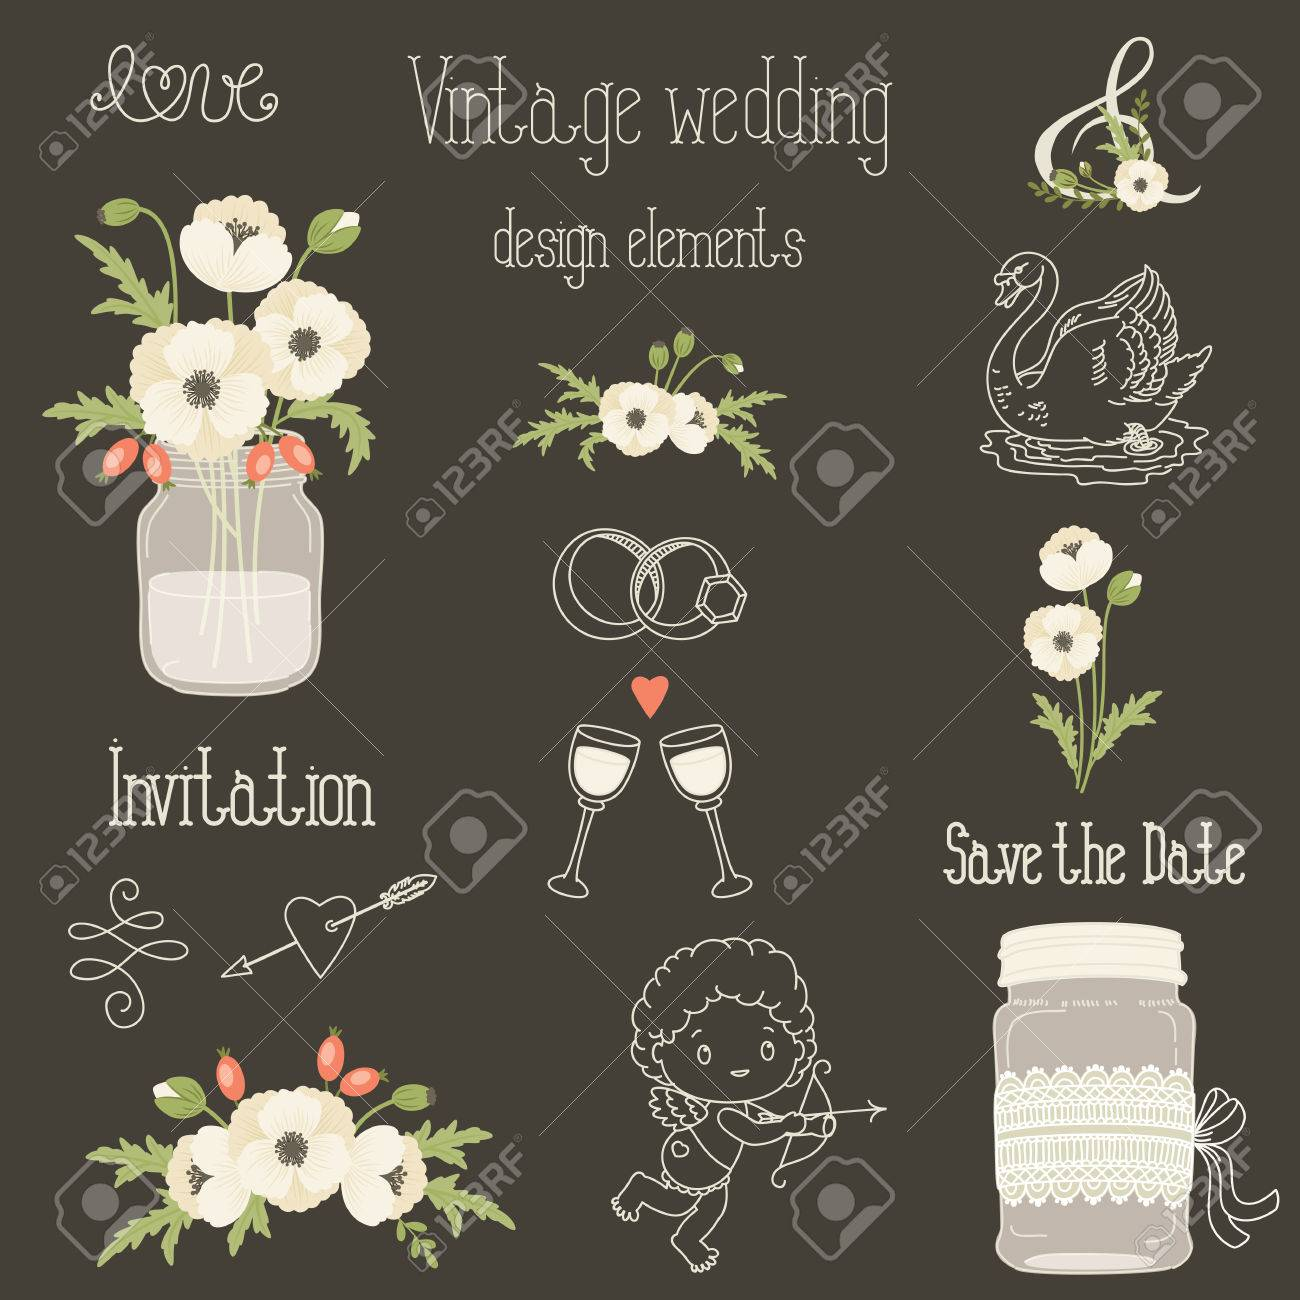 Rustic Wedding Design Elements With White Poppy Flowers Vector Set Of Vintage Hand Drawn Clip